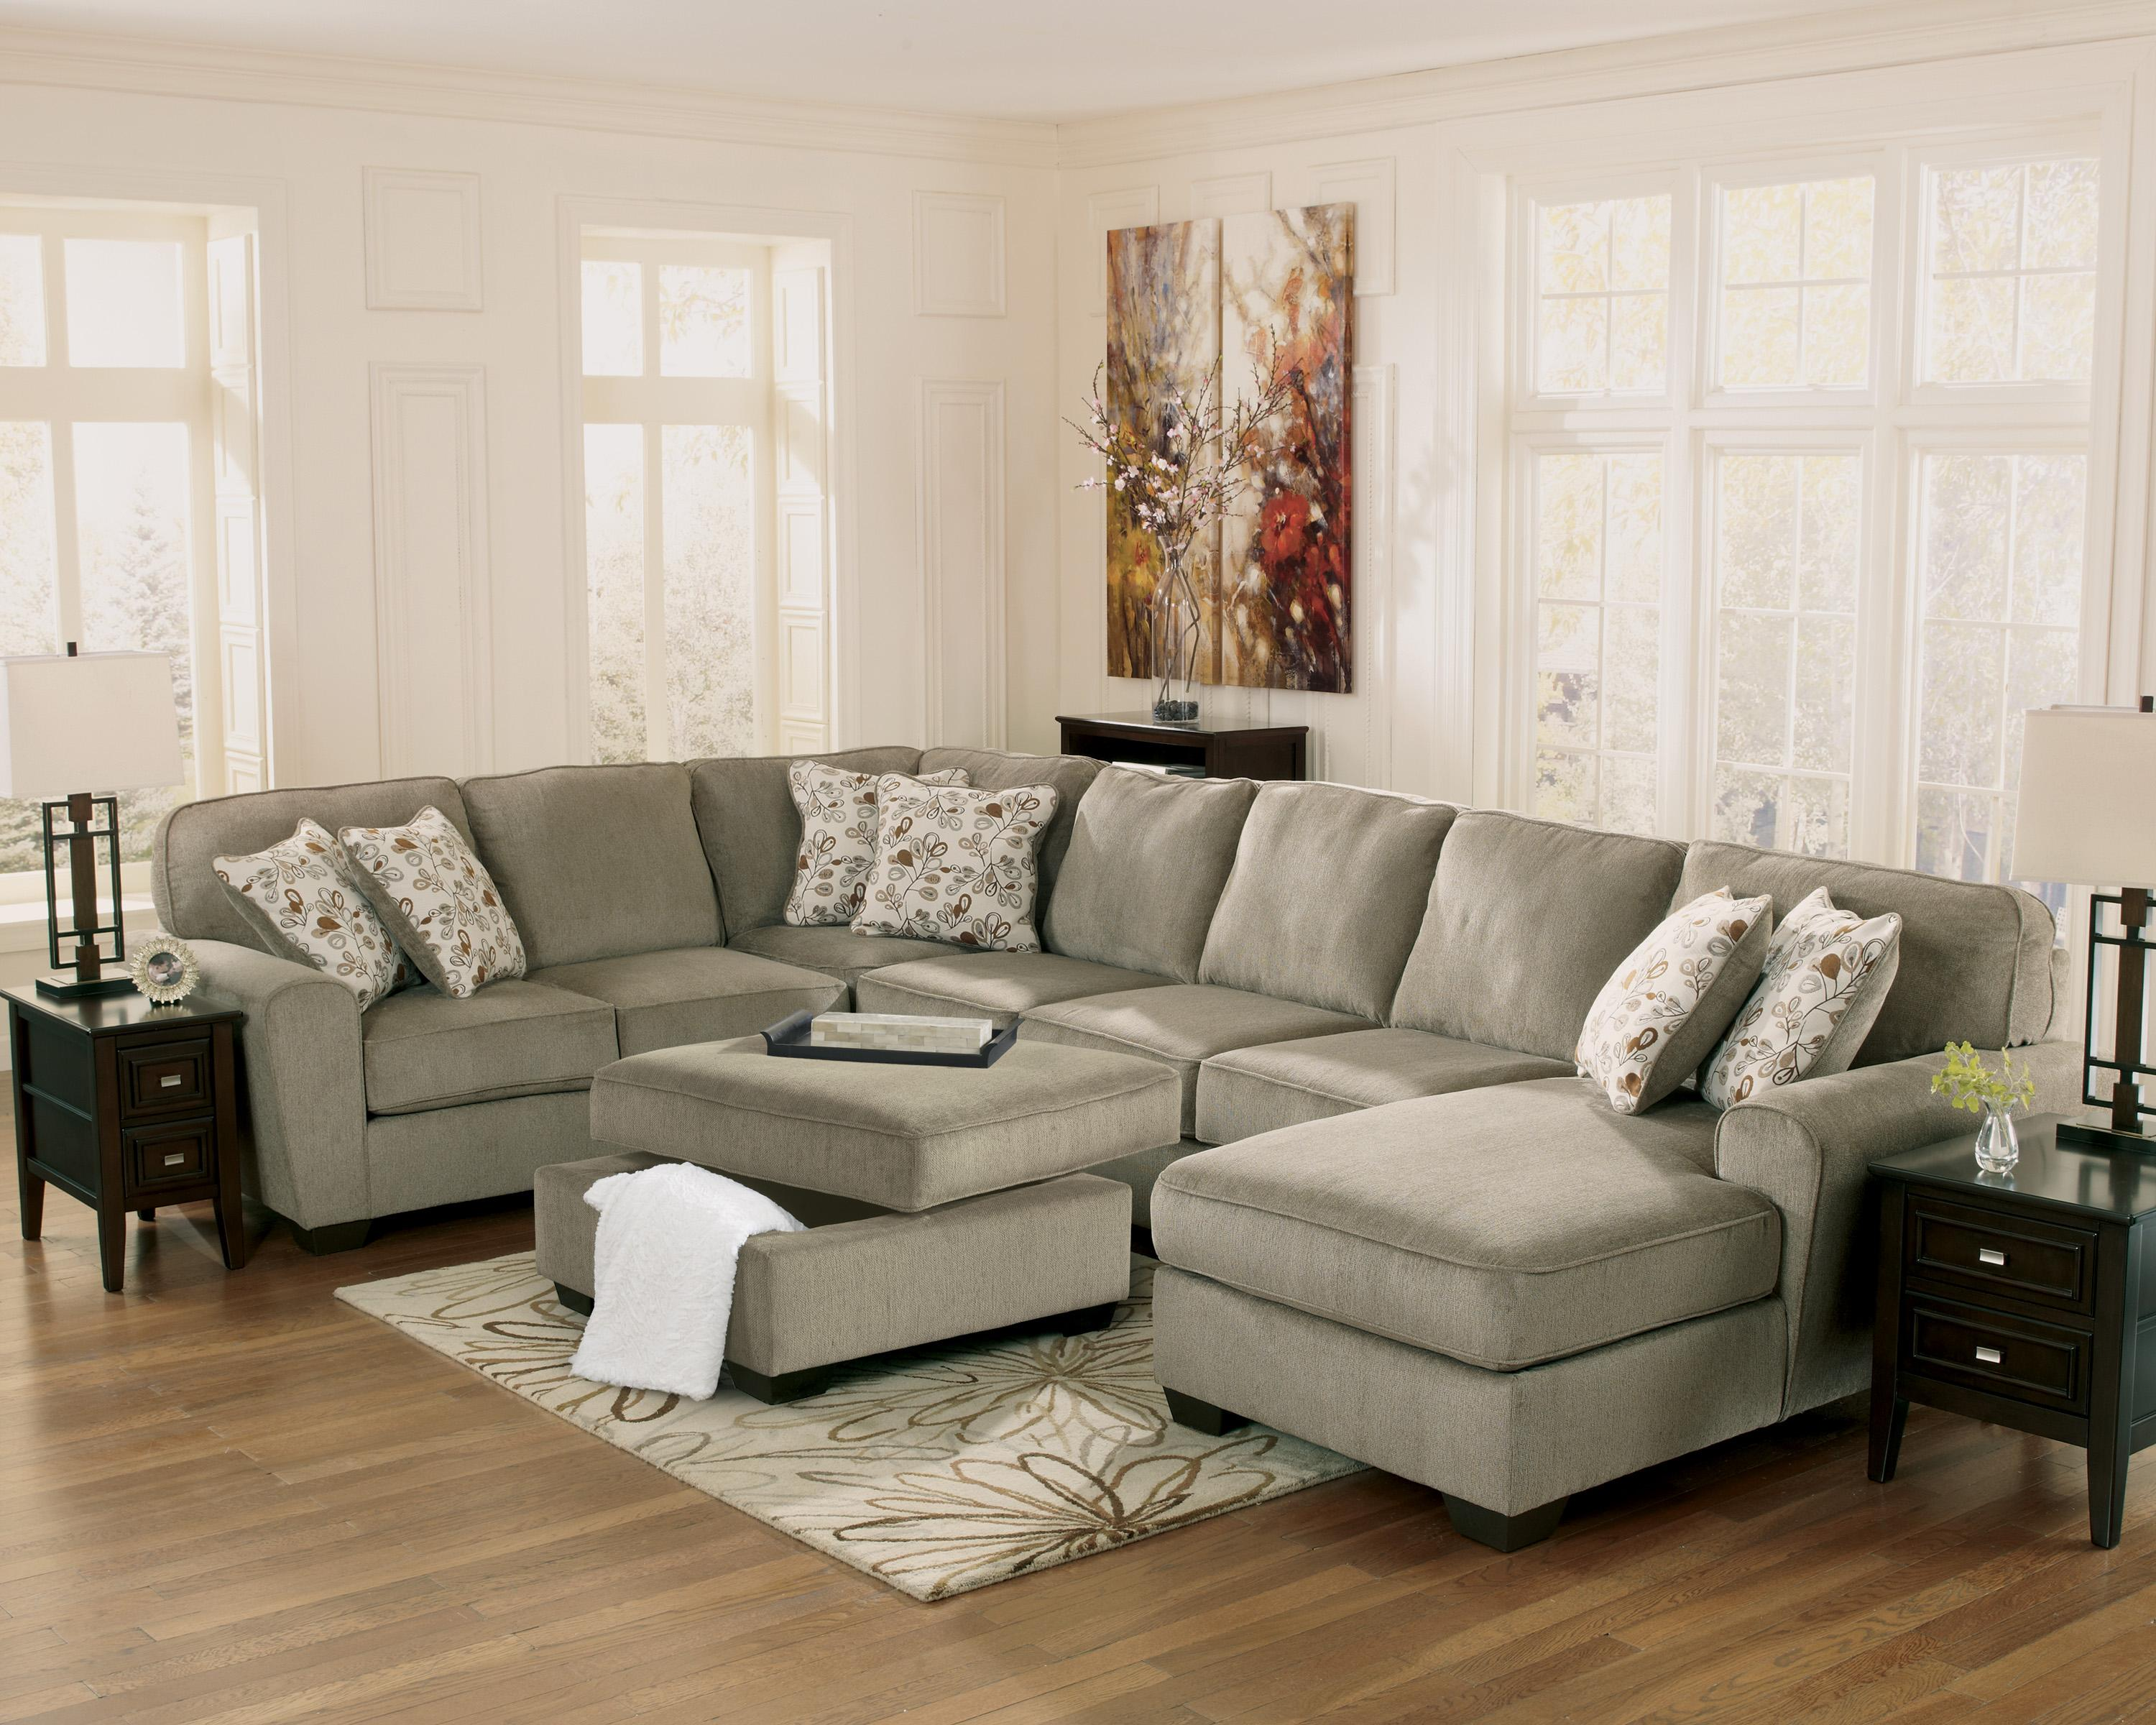 Ashley Furniture Patola Park Patina 4 Piece Sectional With Right Chaise Miskelly Furniture